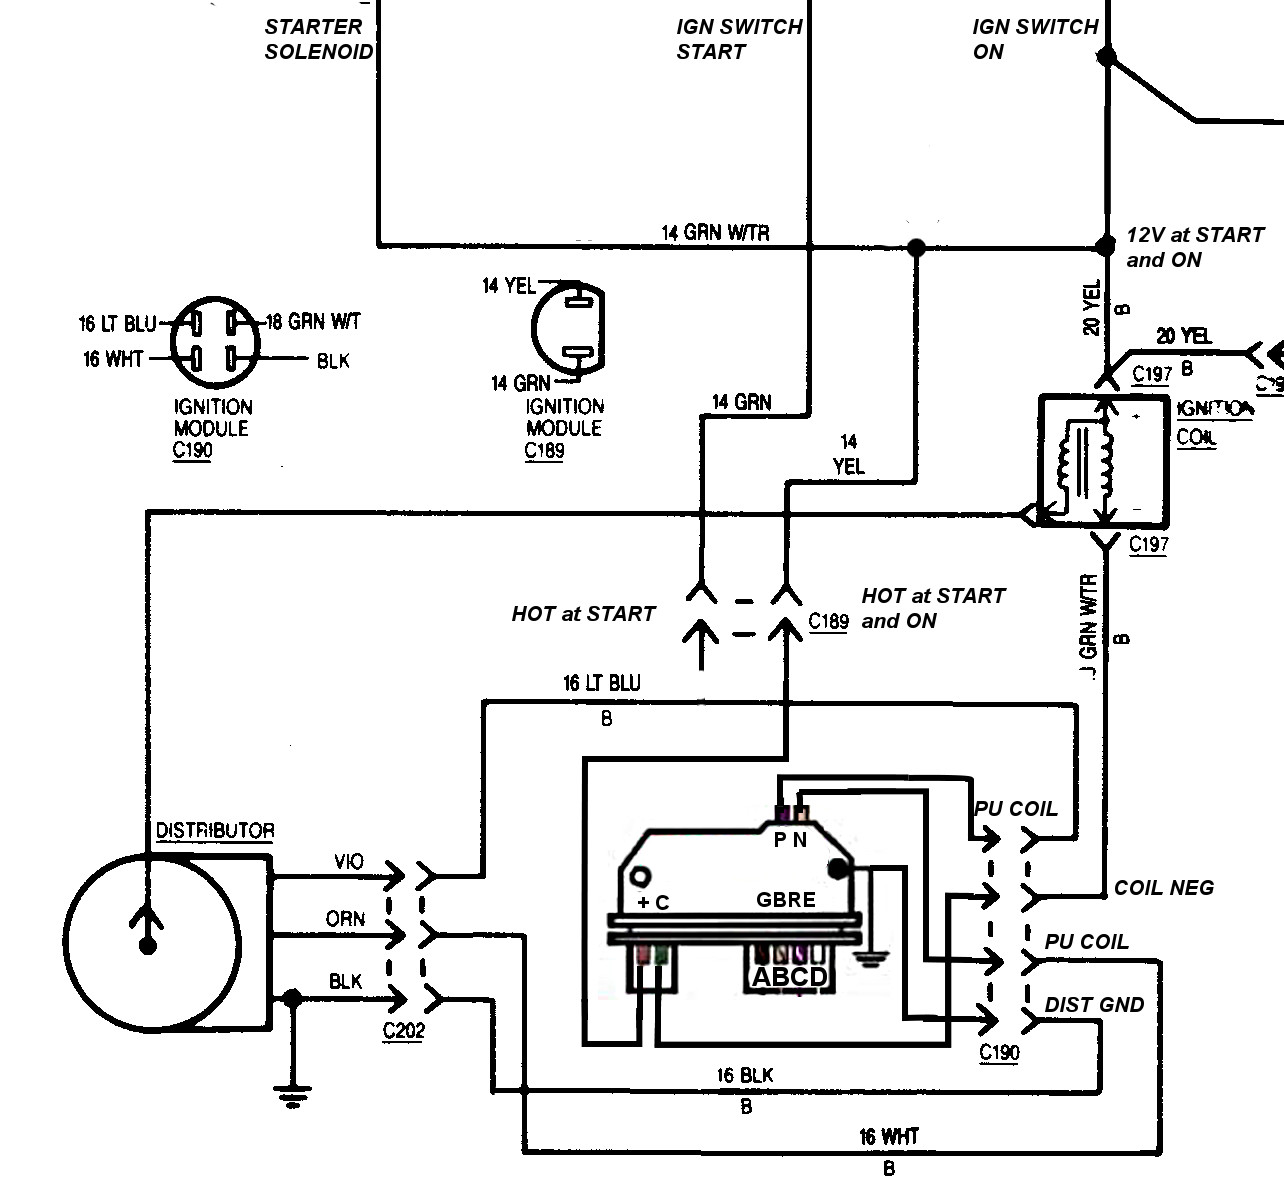 small resolution of 5 pin gm hei ignition module wiring diagram images gallery